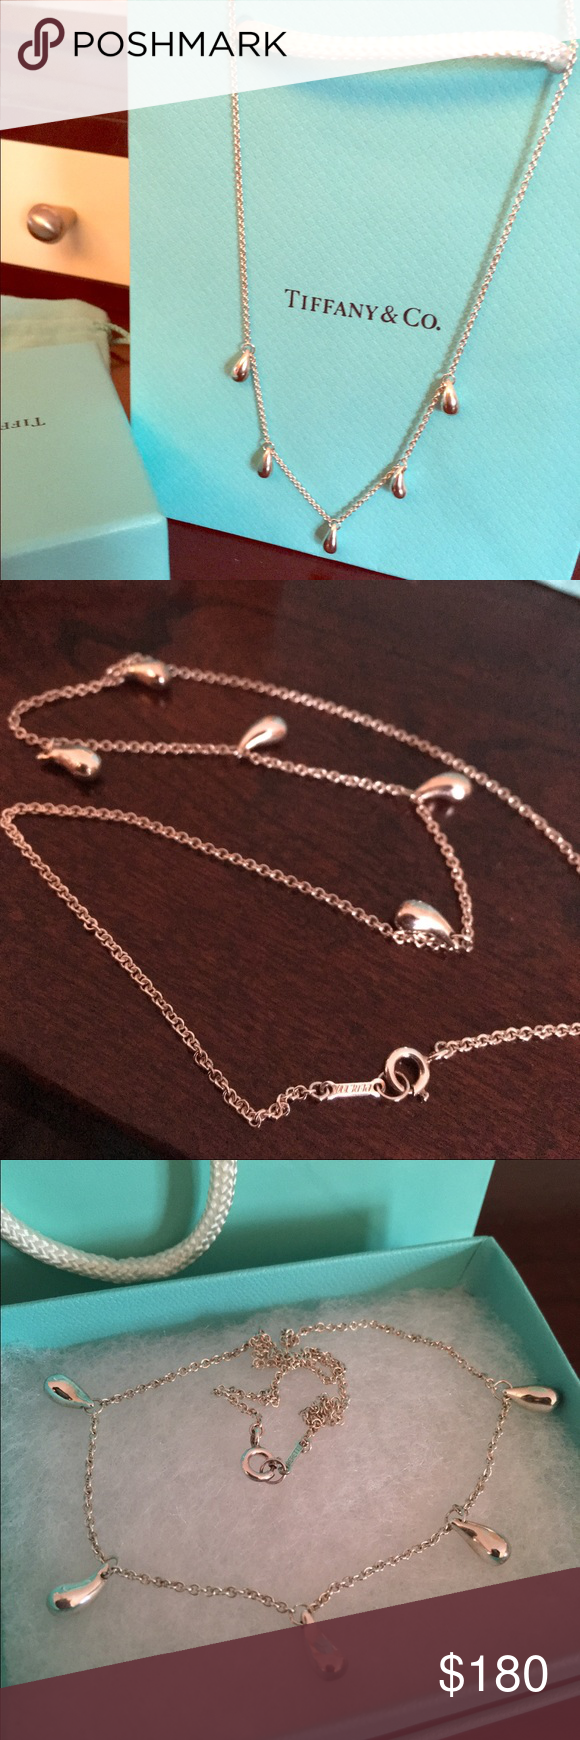 Tiffany's Five Tear drop Perreti necklace Shiny and bright rarely used ** No trades Tiffany & Co. Jewelry Necklaces